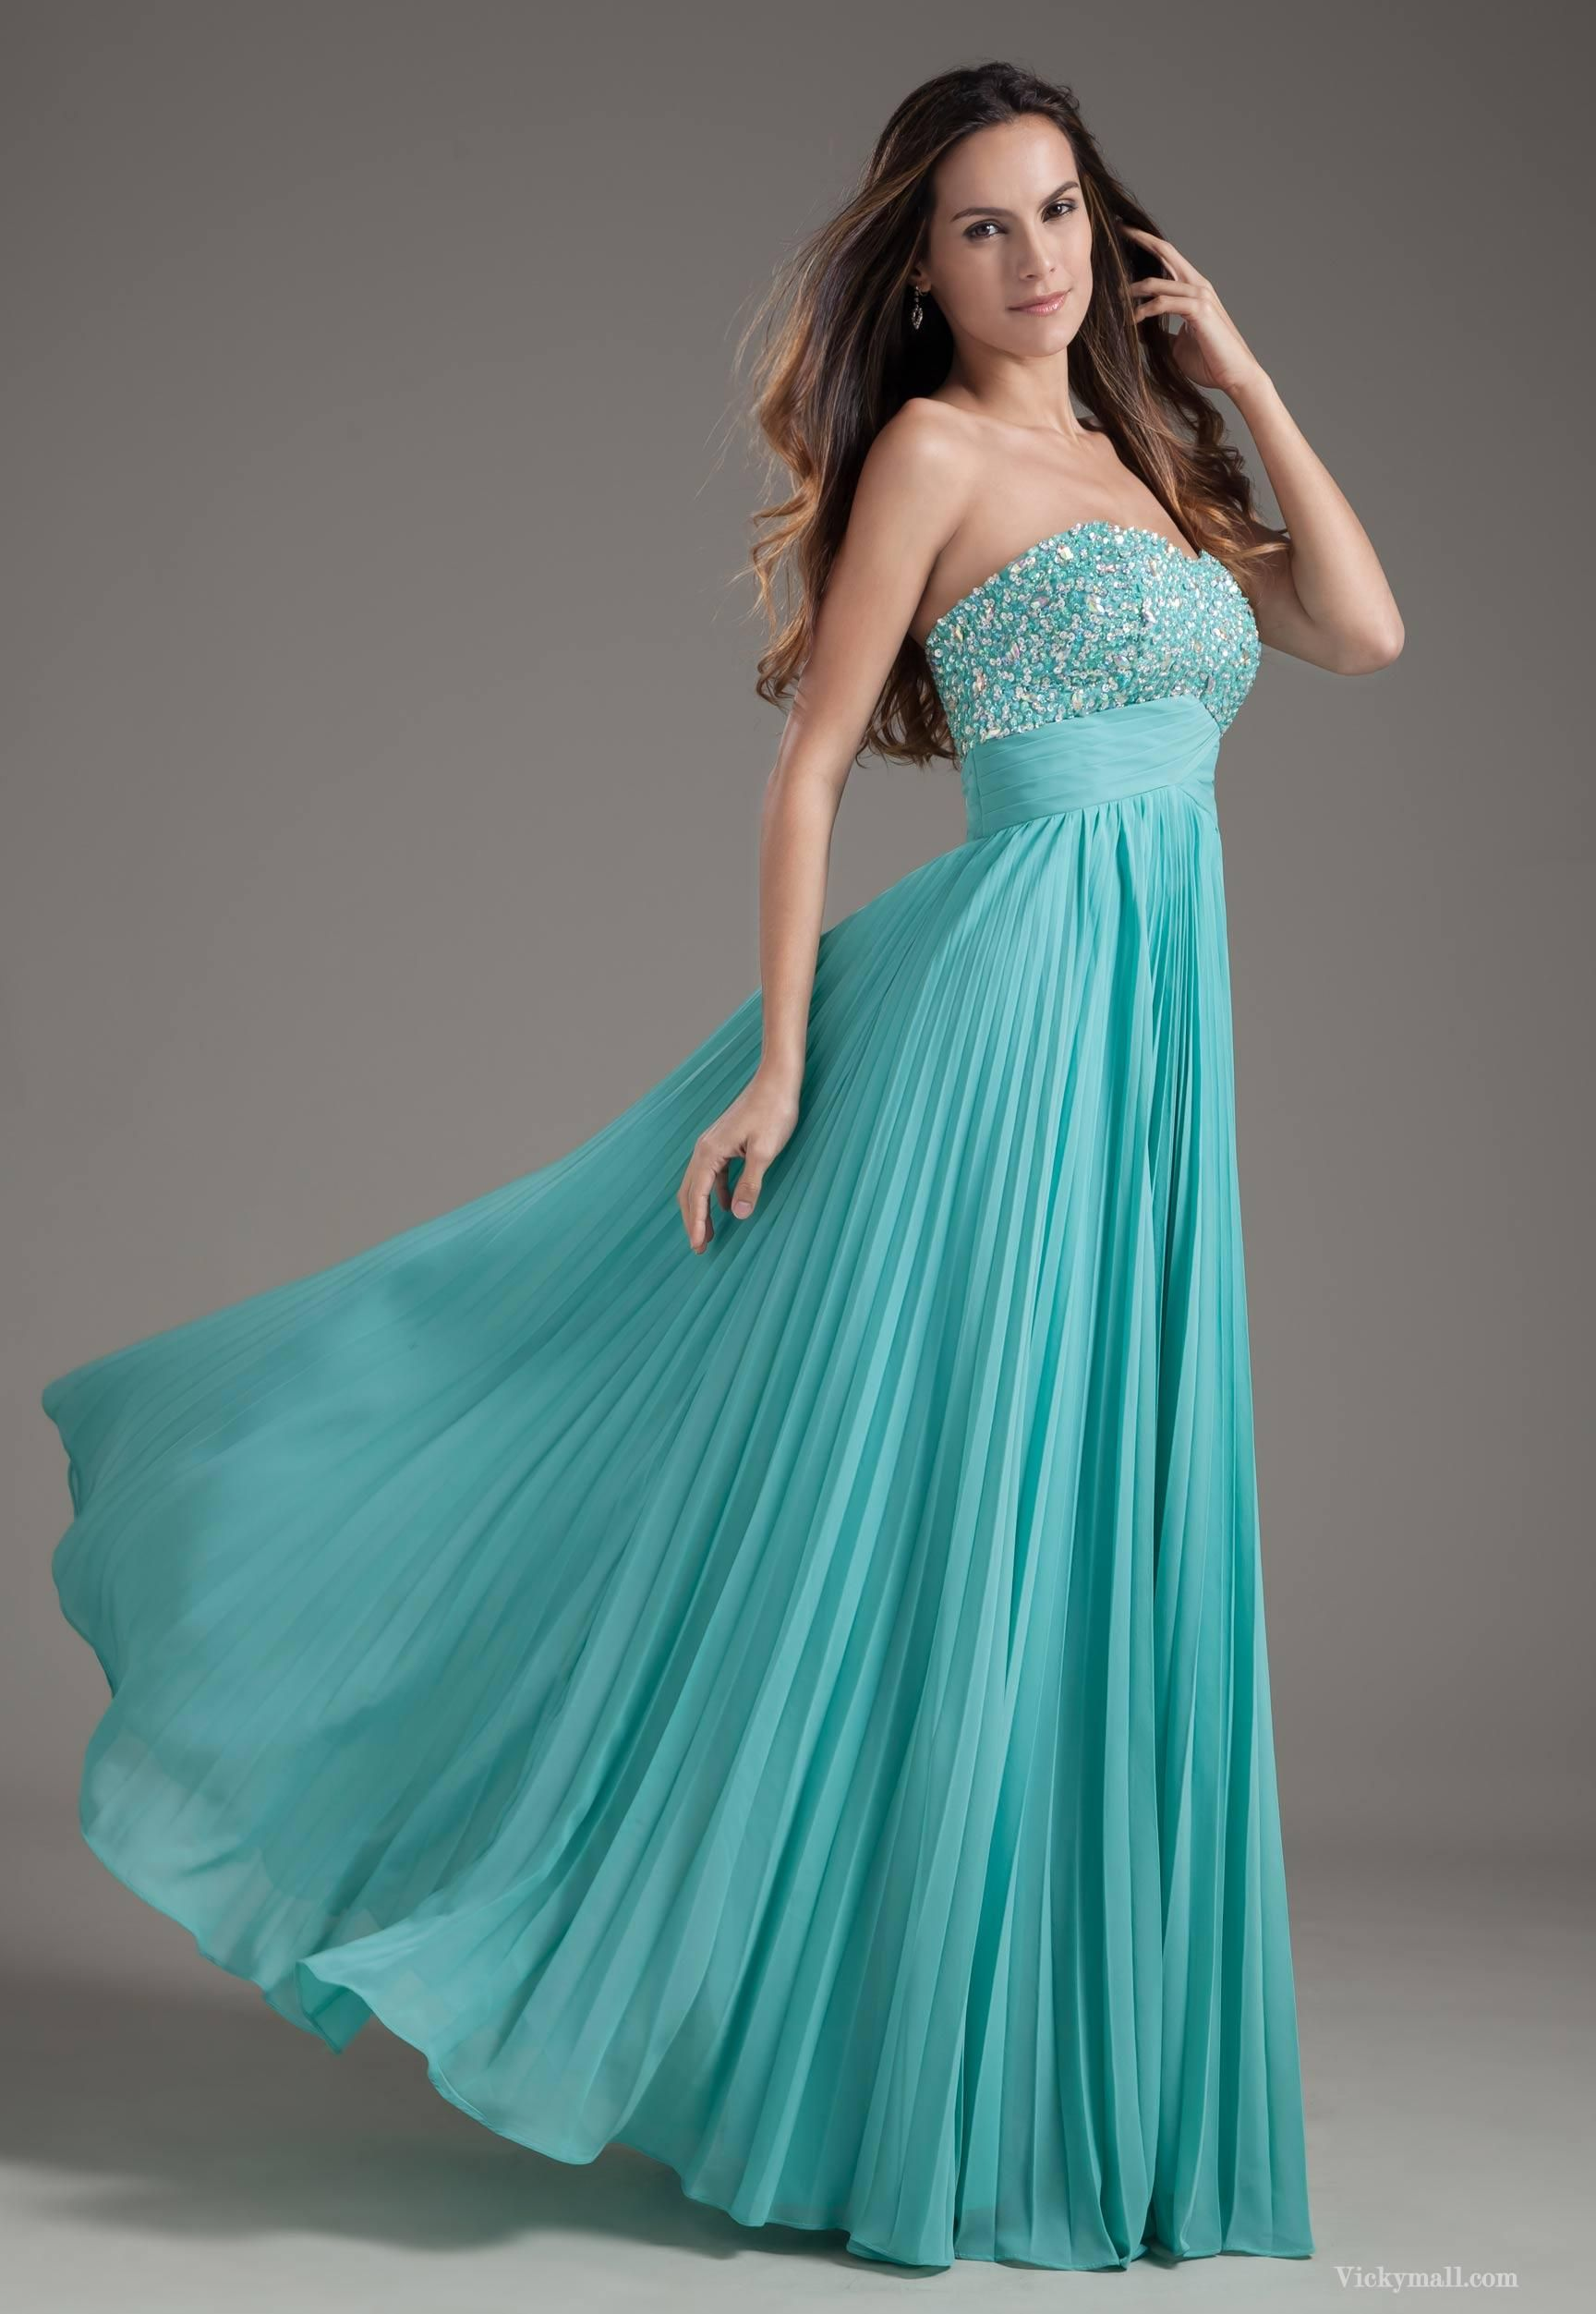 Awesome Prom Dresses In Ky Pictures - All Wedding Dresses ...